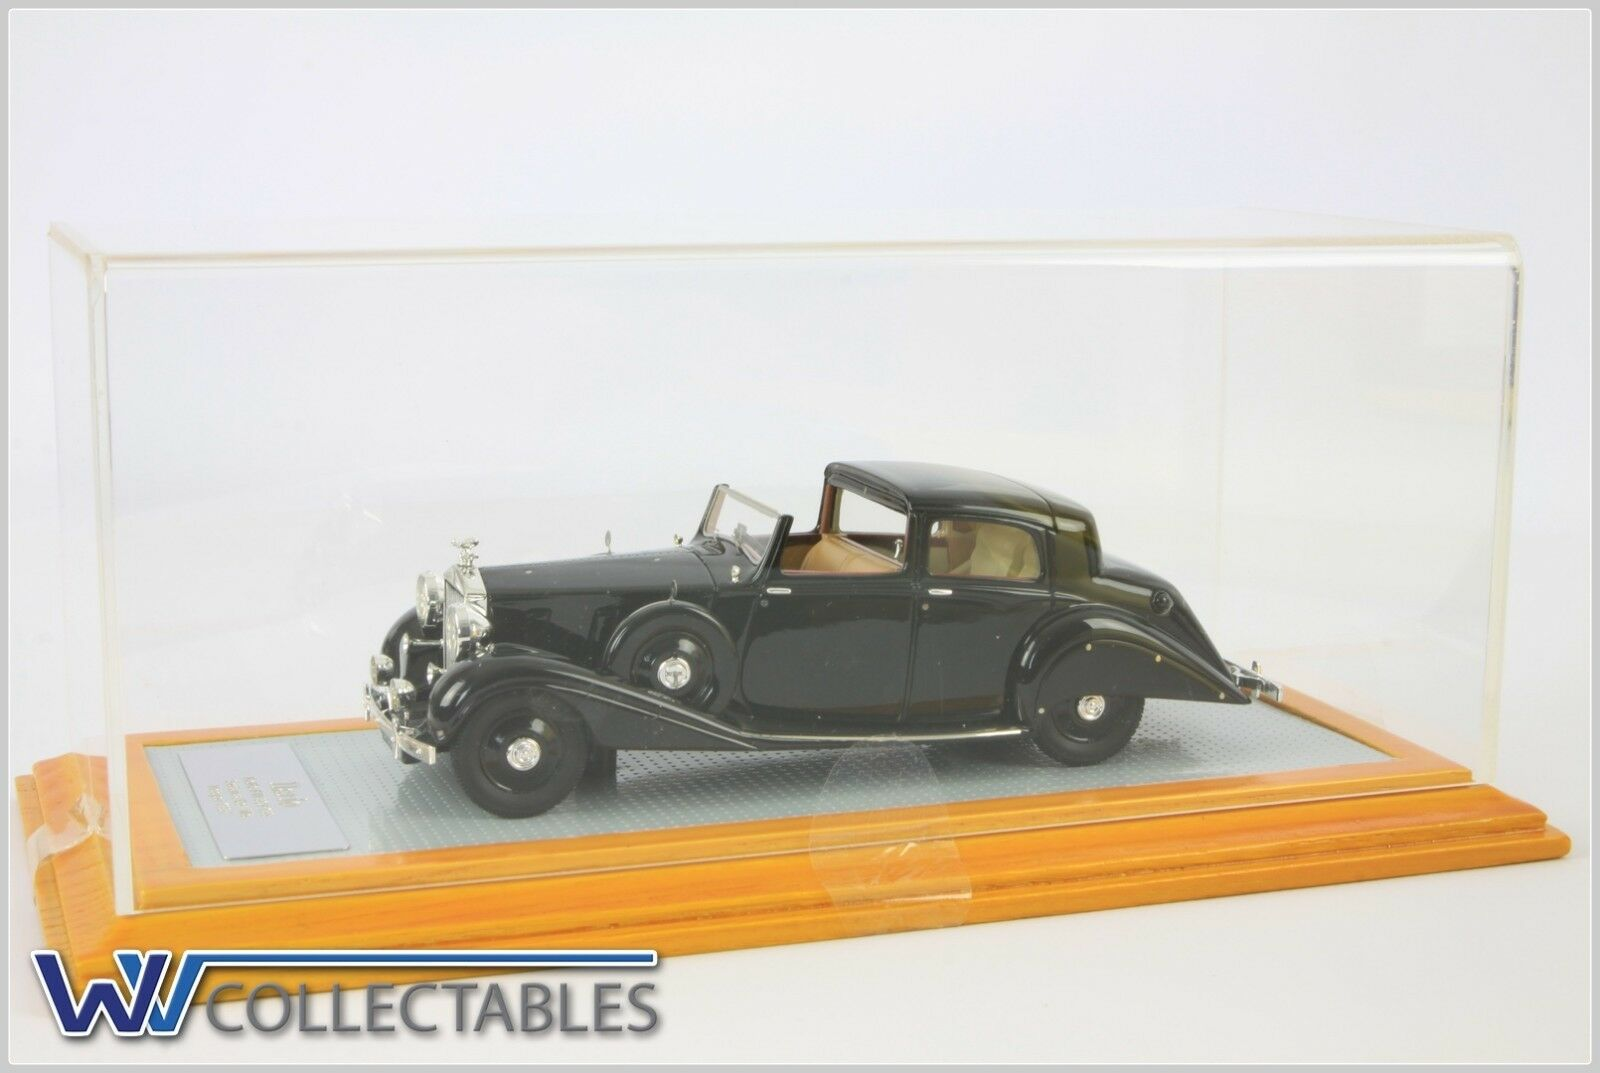 Ilario Rolls R Plll IL052 Sedance de Ville Hooper 1937 Limited 99 Pieces 1 43